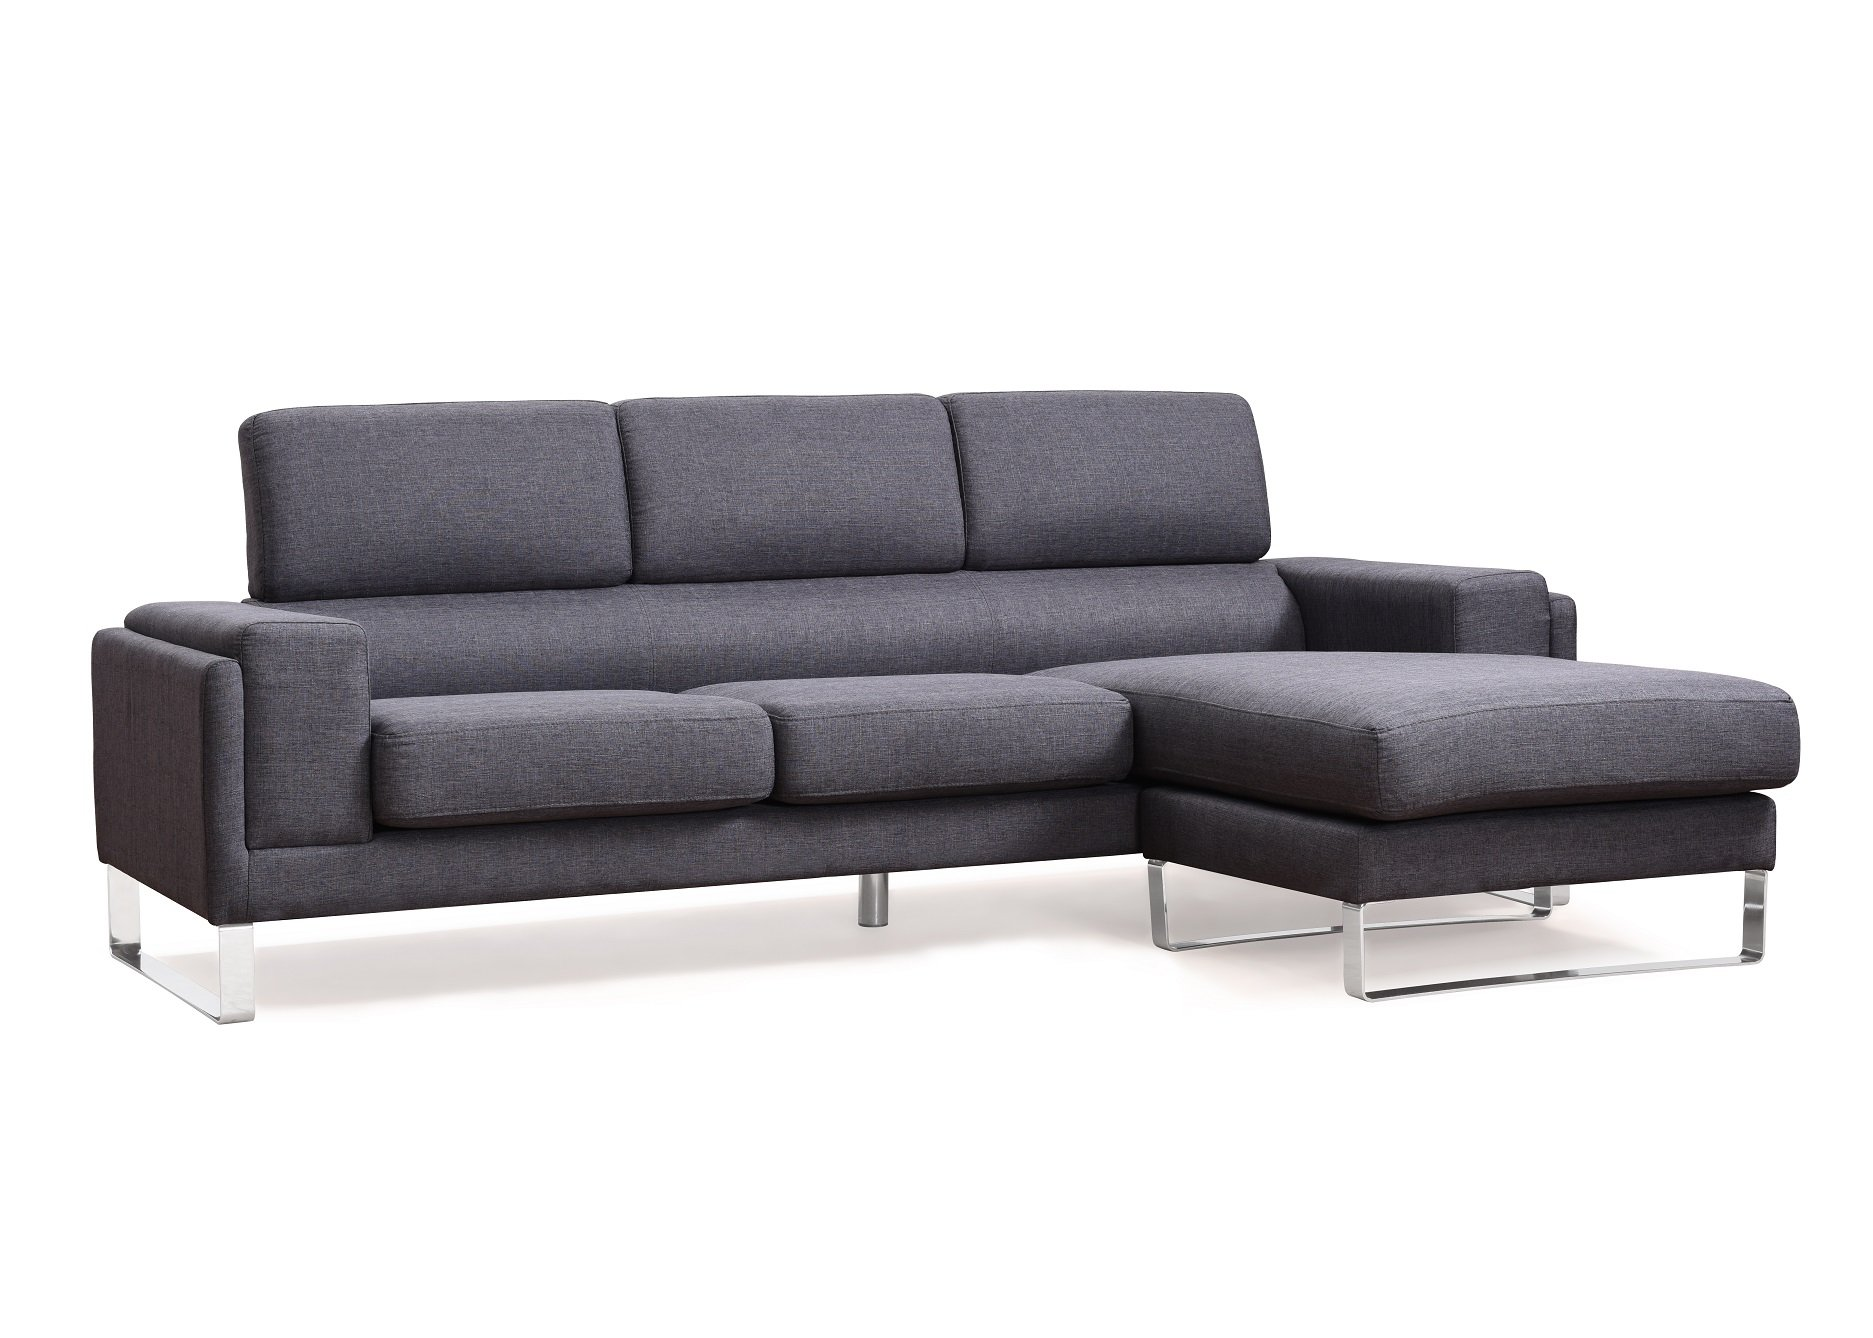 US Pride Furniture Modern Fabric Upholstered Reversible Sectional Sofa with Chaise and Chrome Leg Finish Charcoal by US Pride Furniture